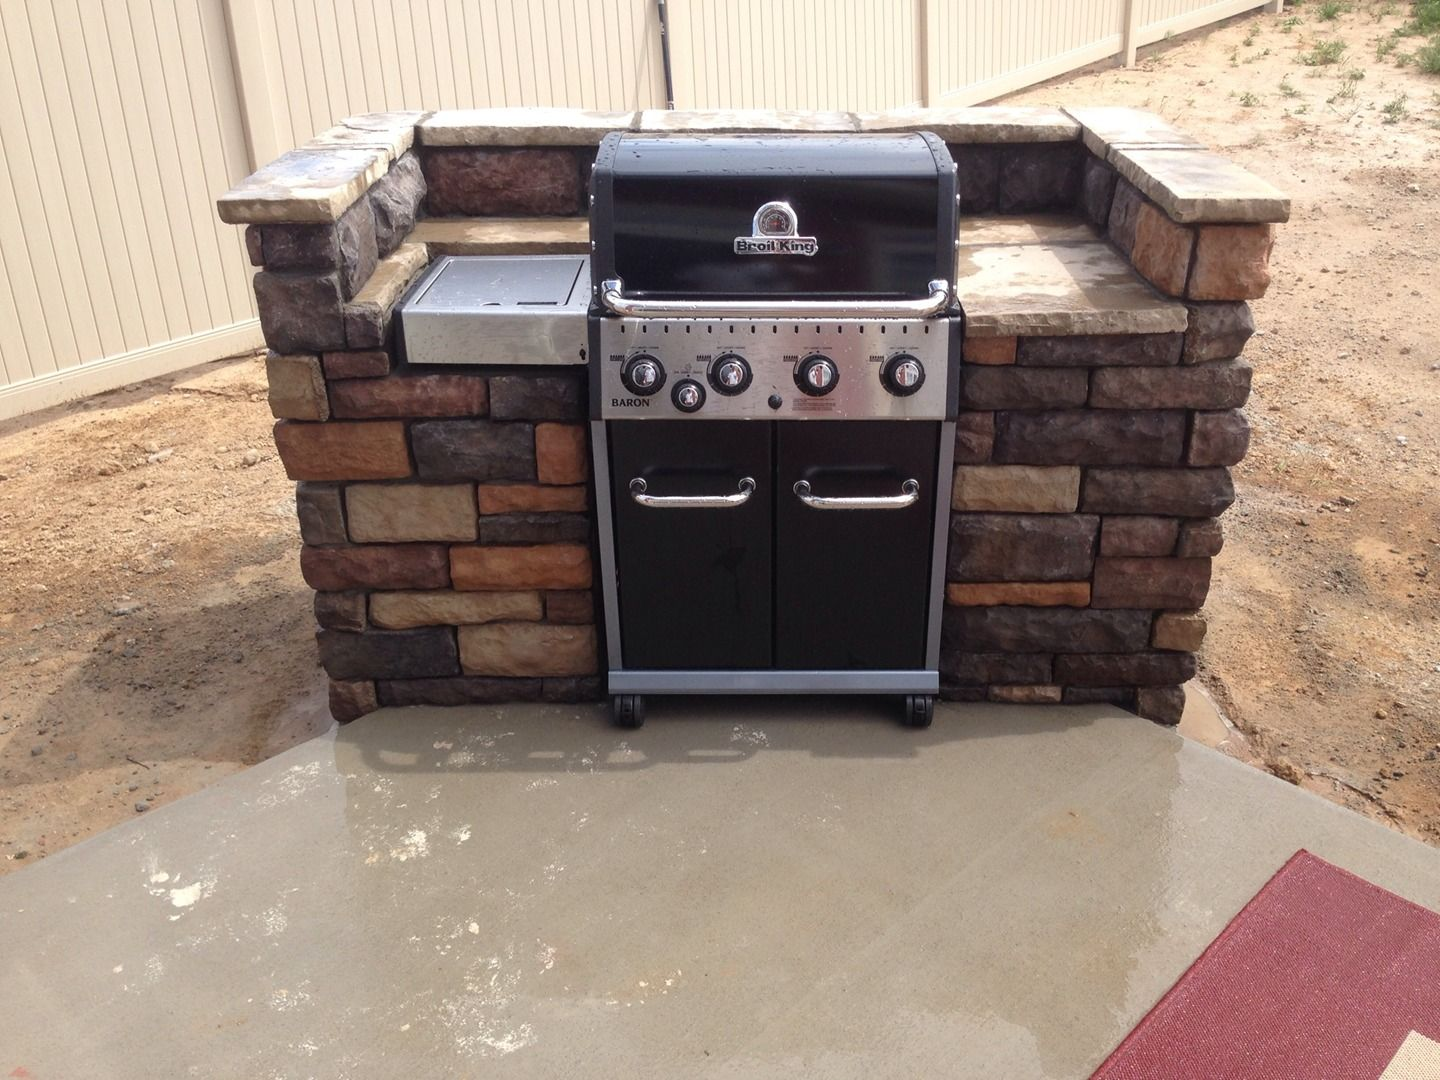 backyard kitchen built in grill patio bbq grill built in